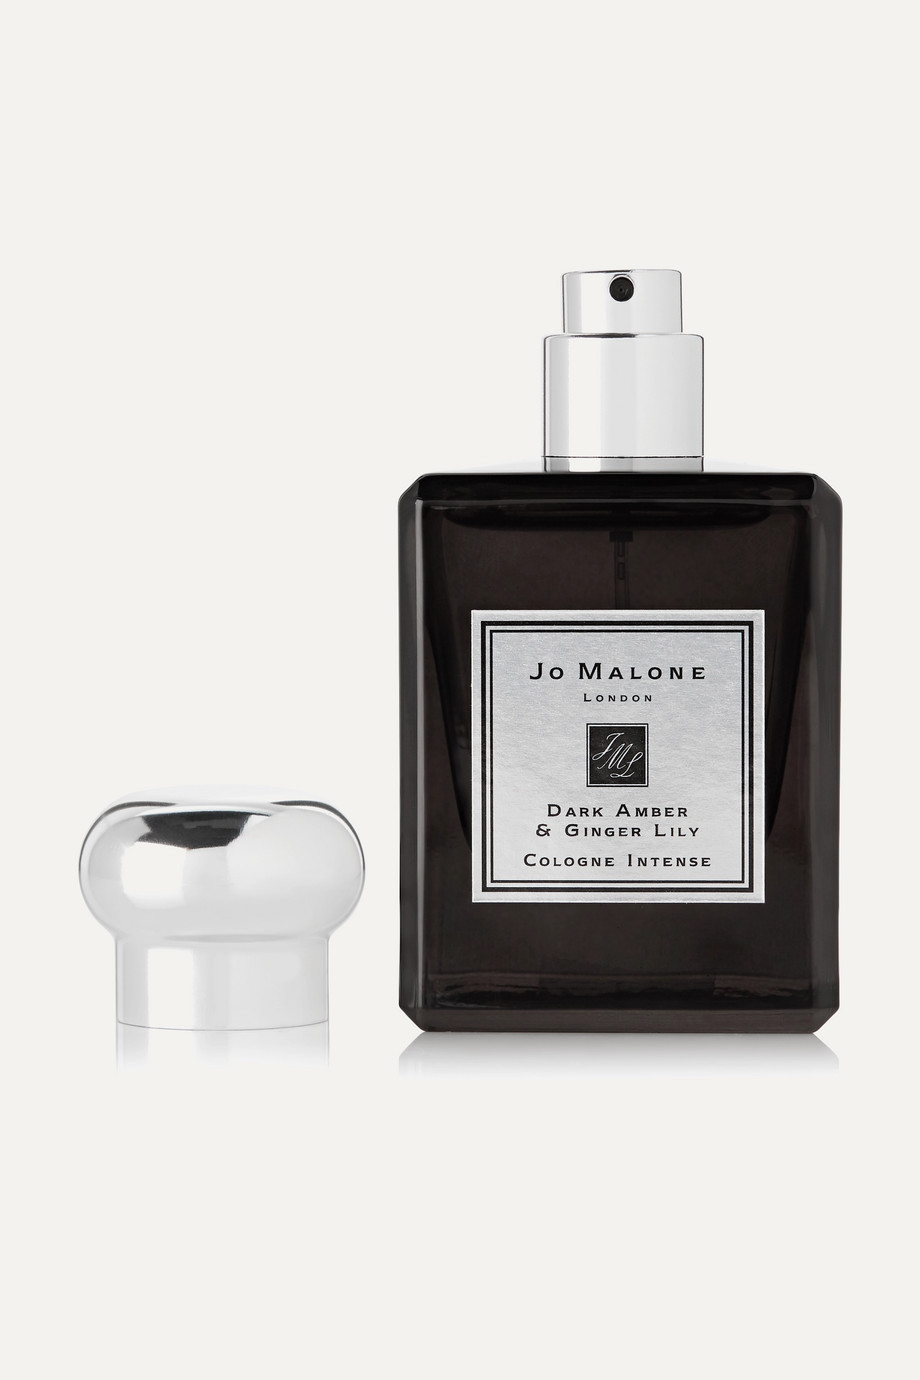 Jo Malone London Dark Amber & Ginger Lily Cologne Intense, 50ml